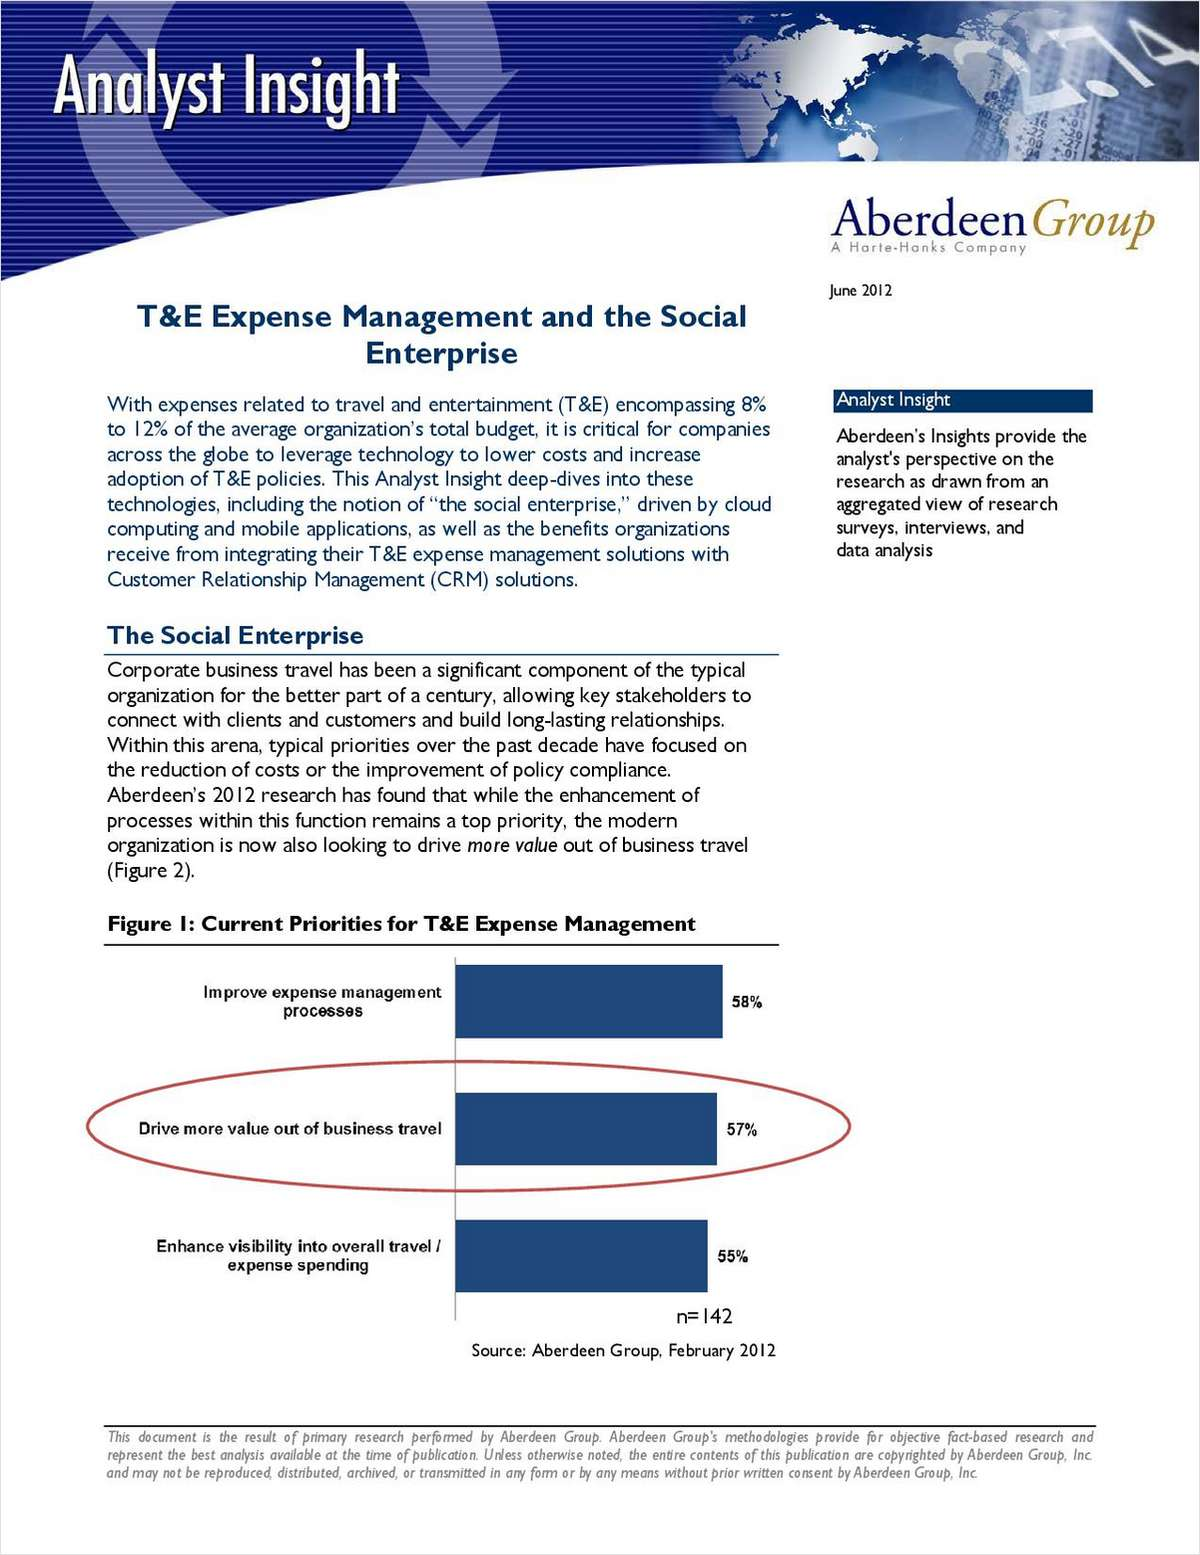 T&E Expense Management and the Social Enterprise